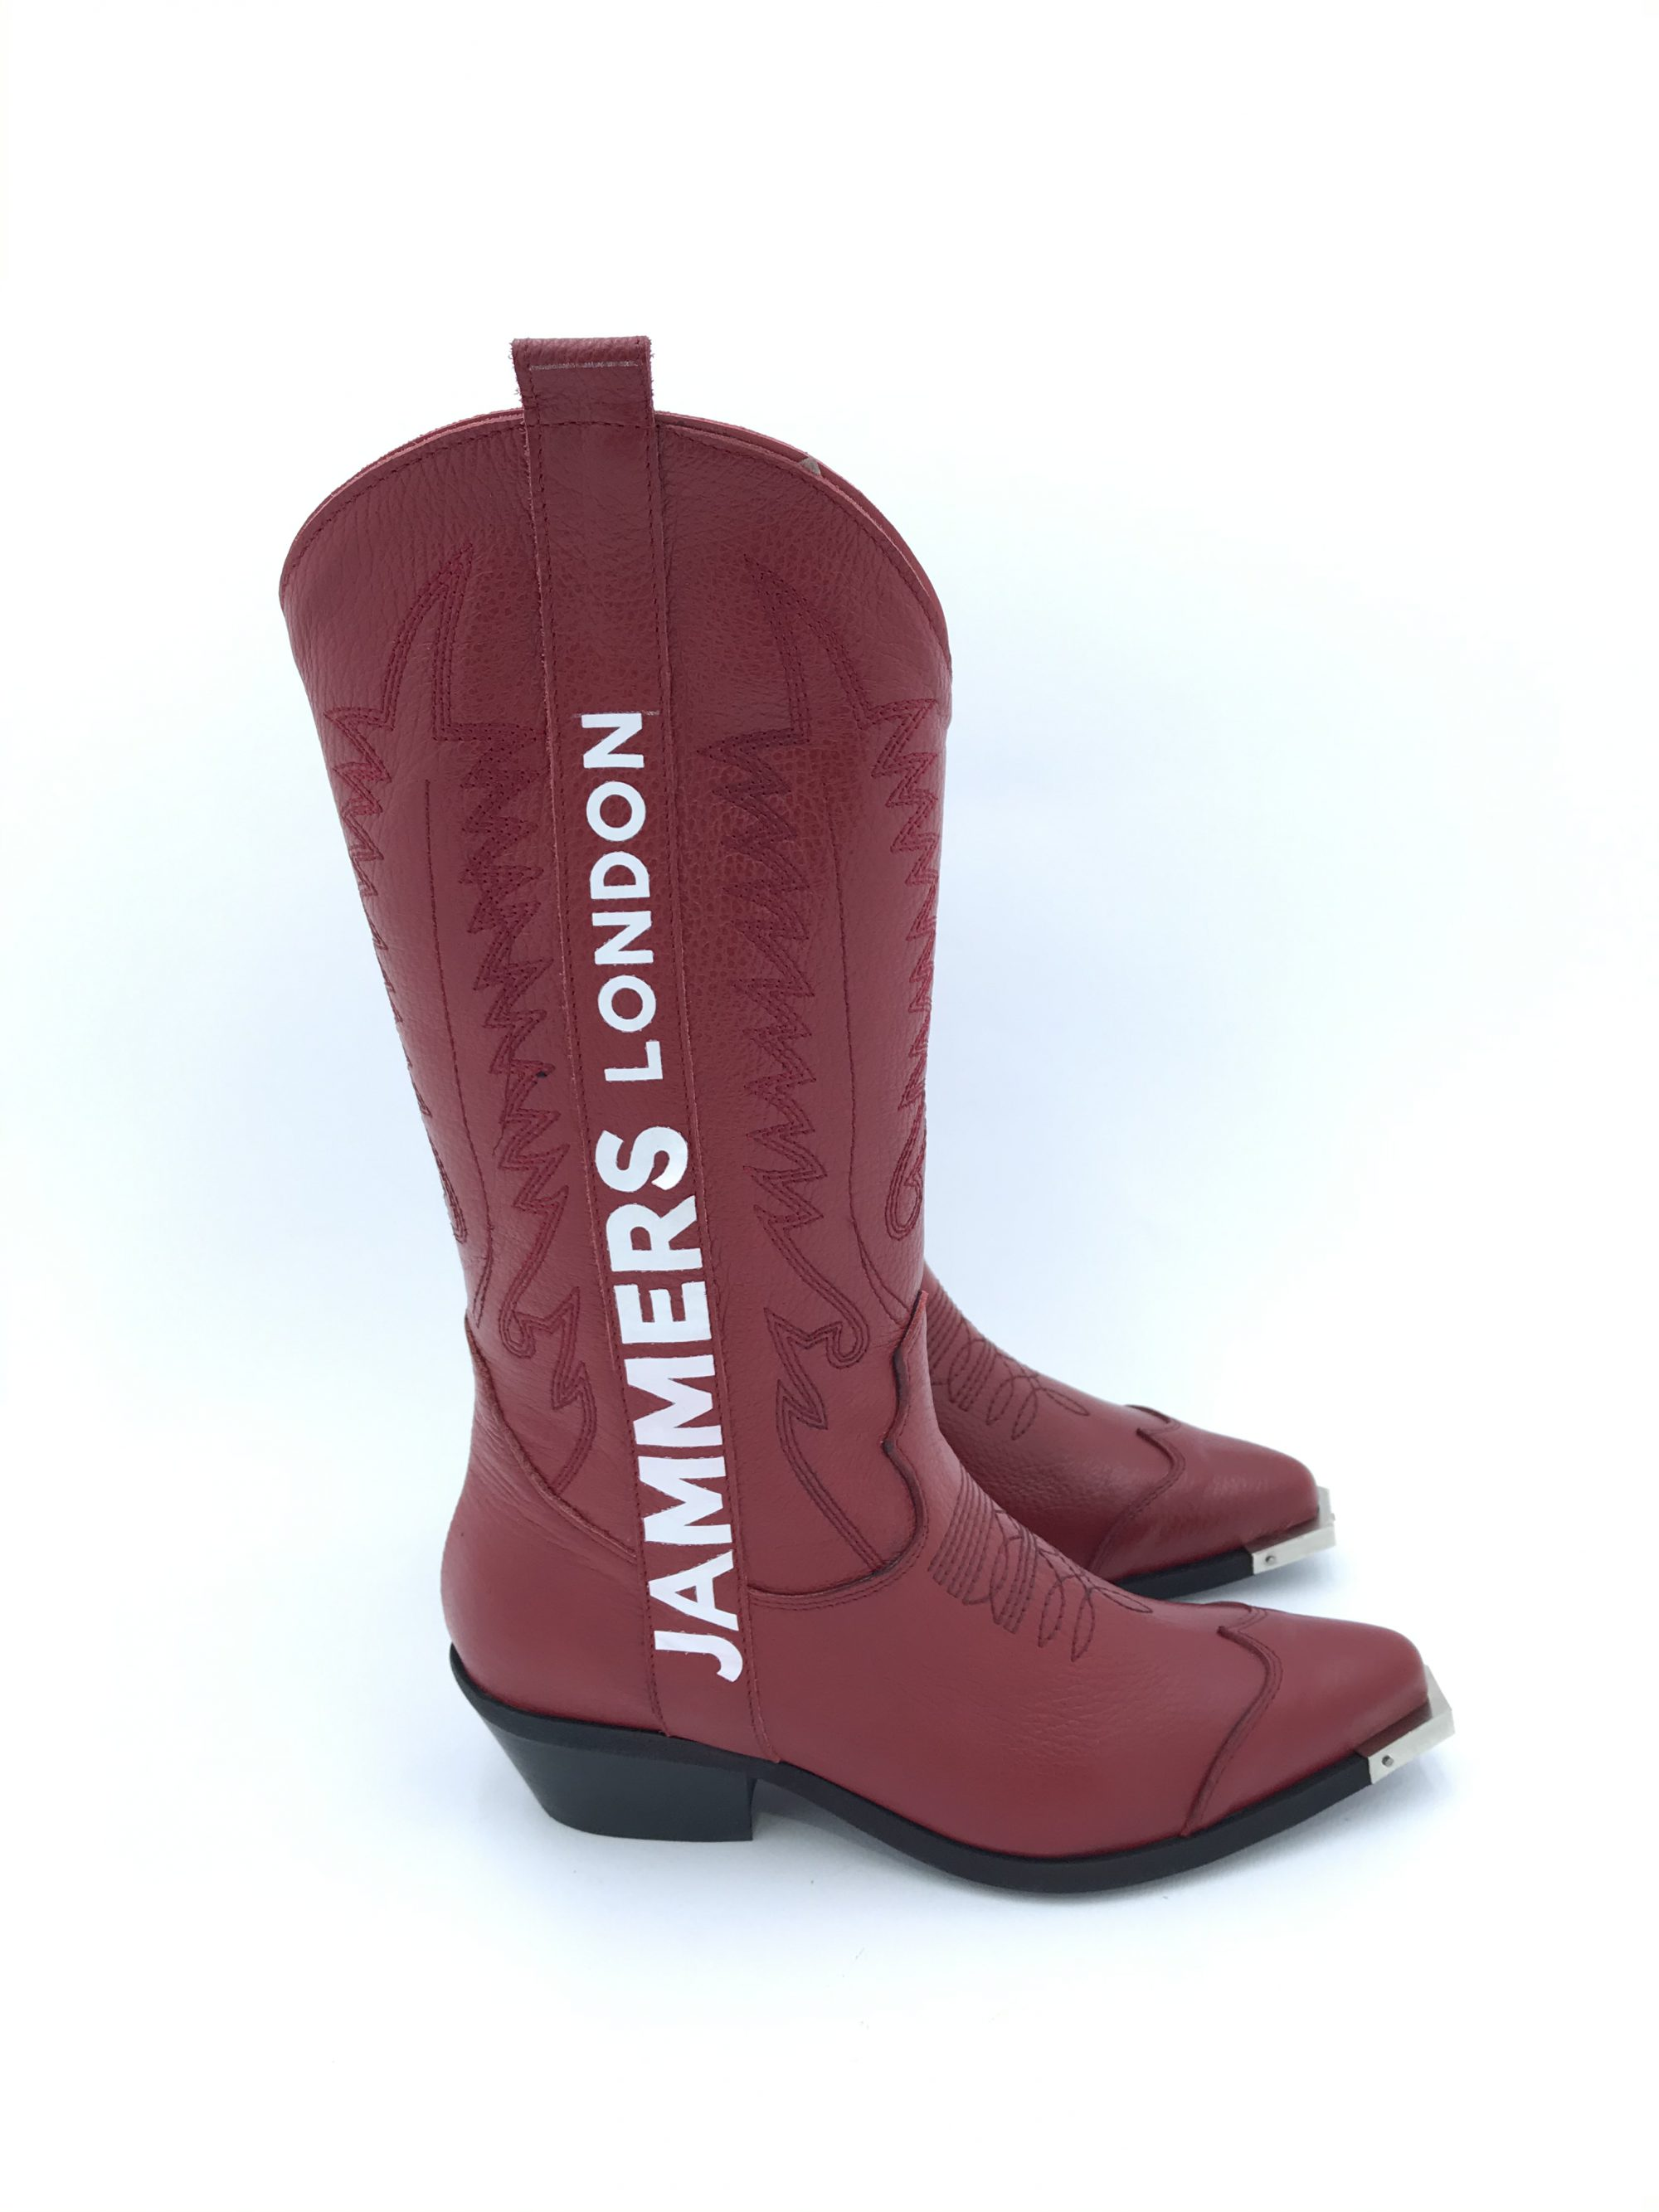 JAMMERS CAMPEROS ALTO OLDWEST OFF PELLE ROSSO